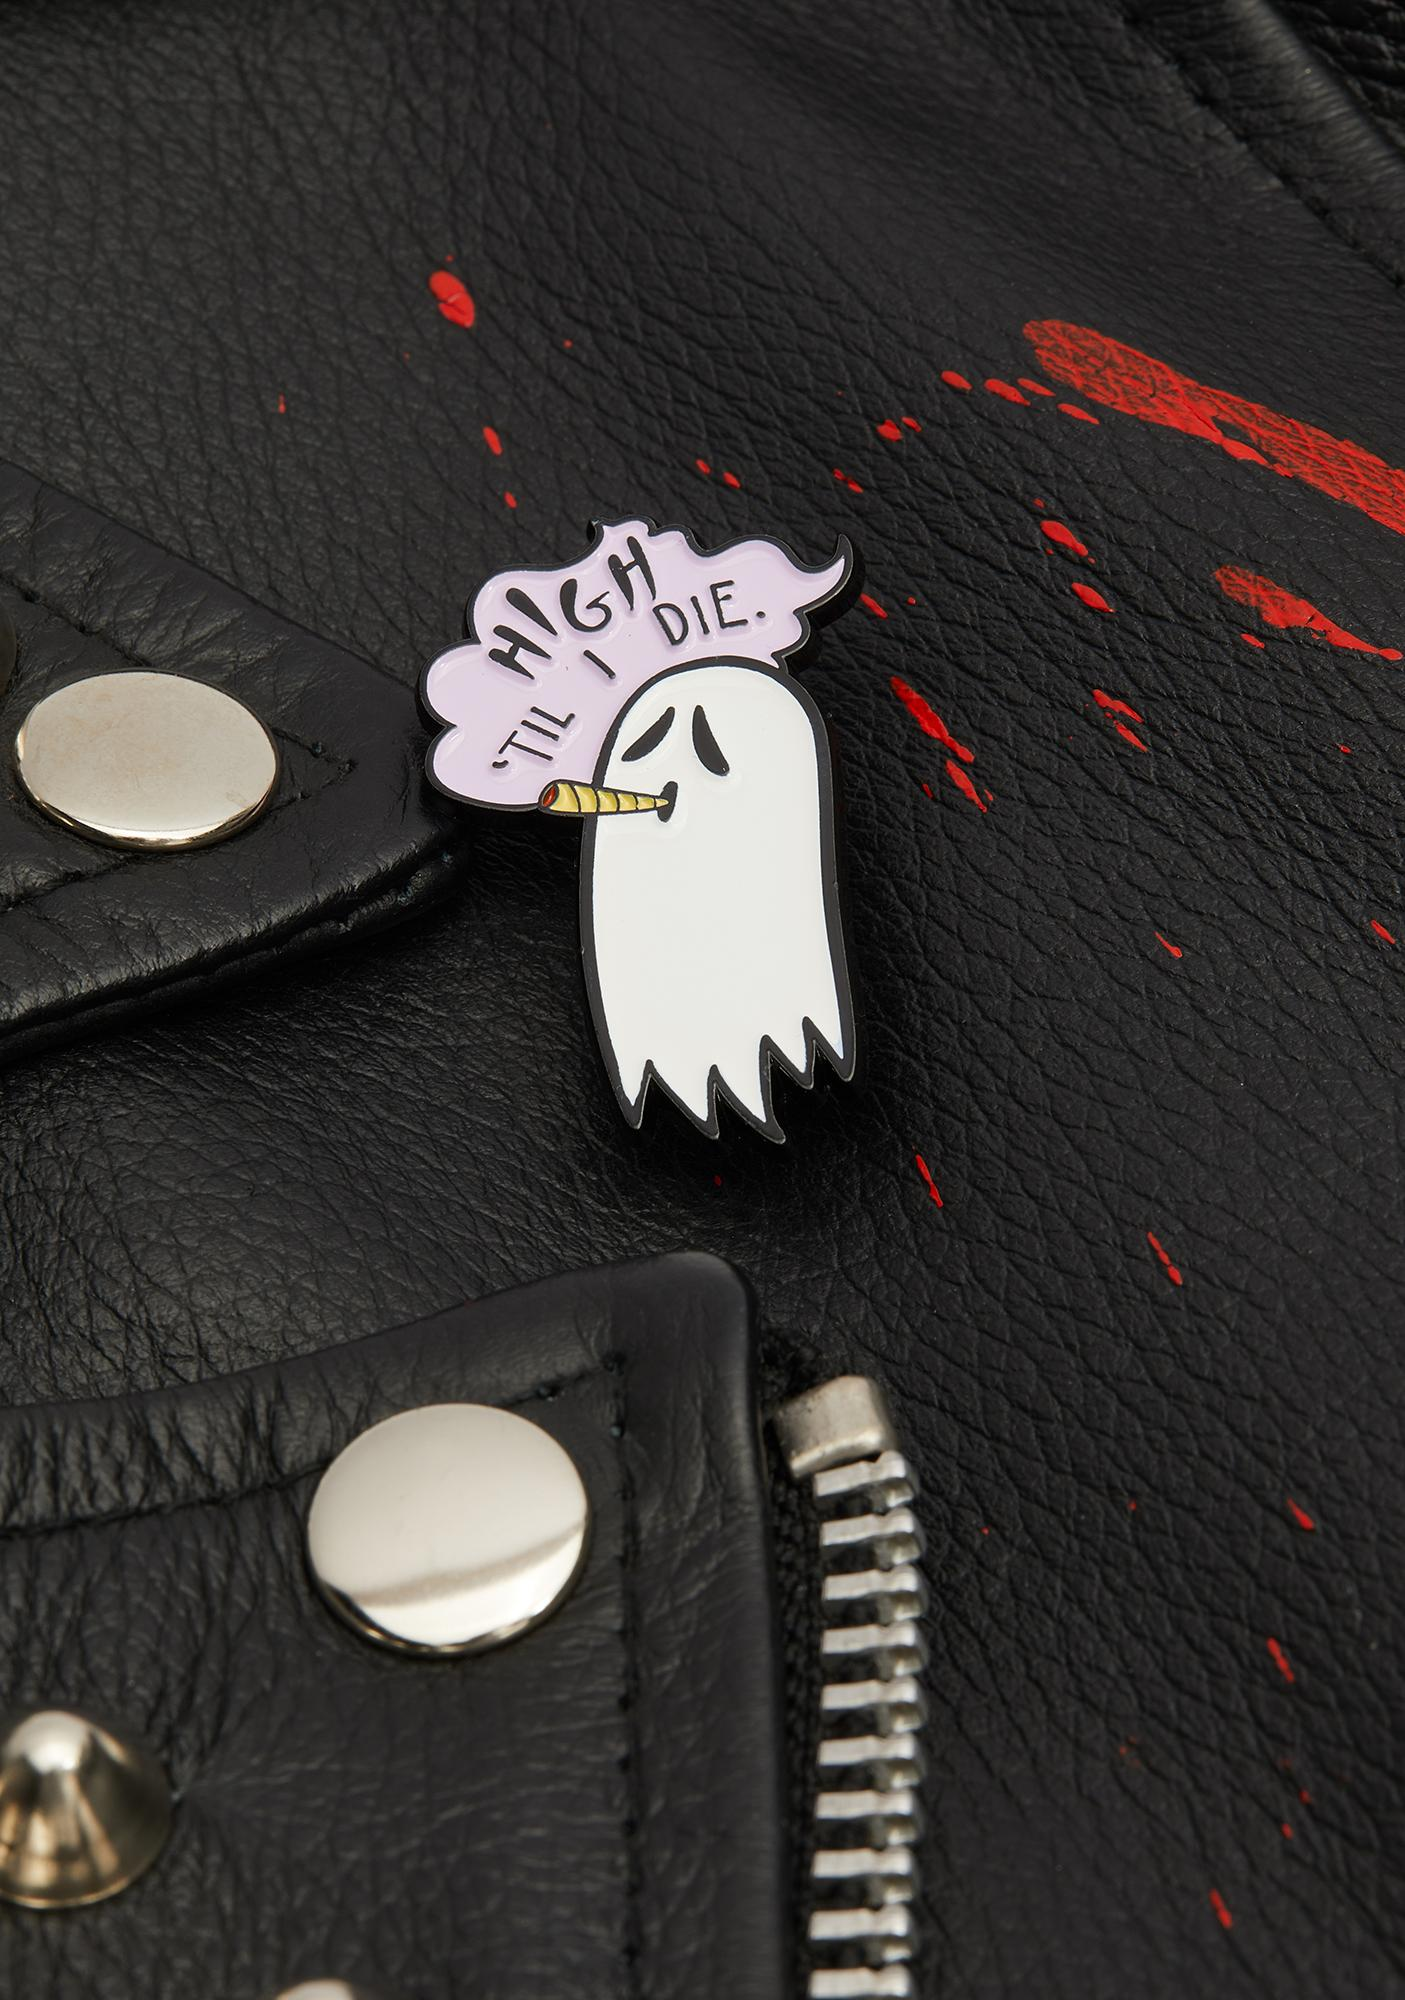 Ectogasm High Till I Die Pin